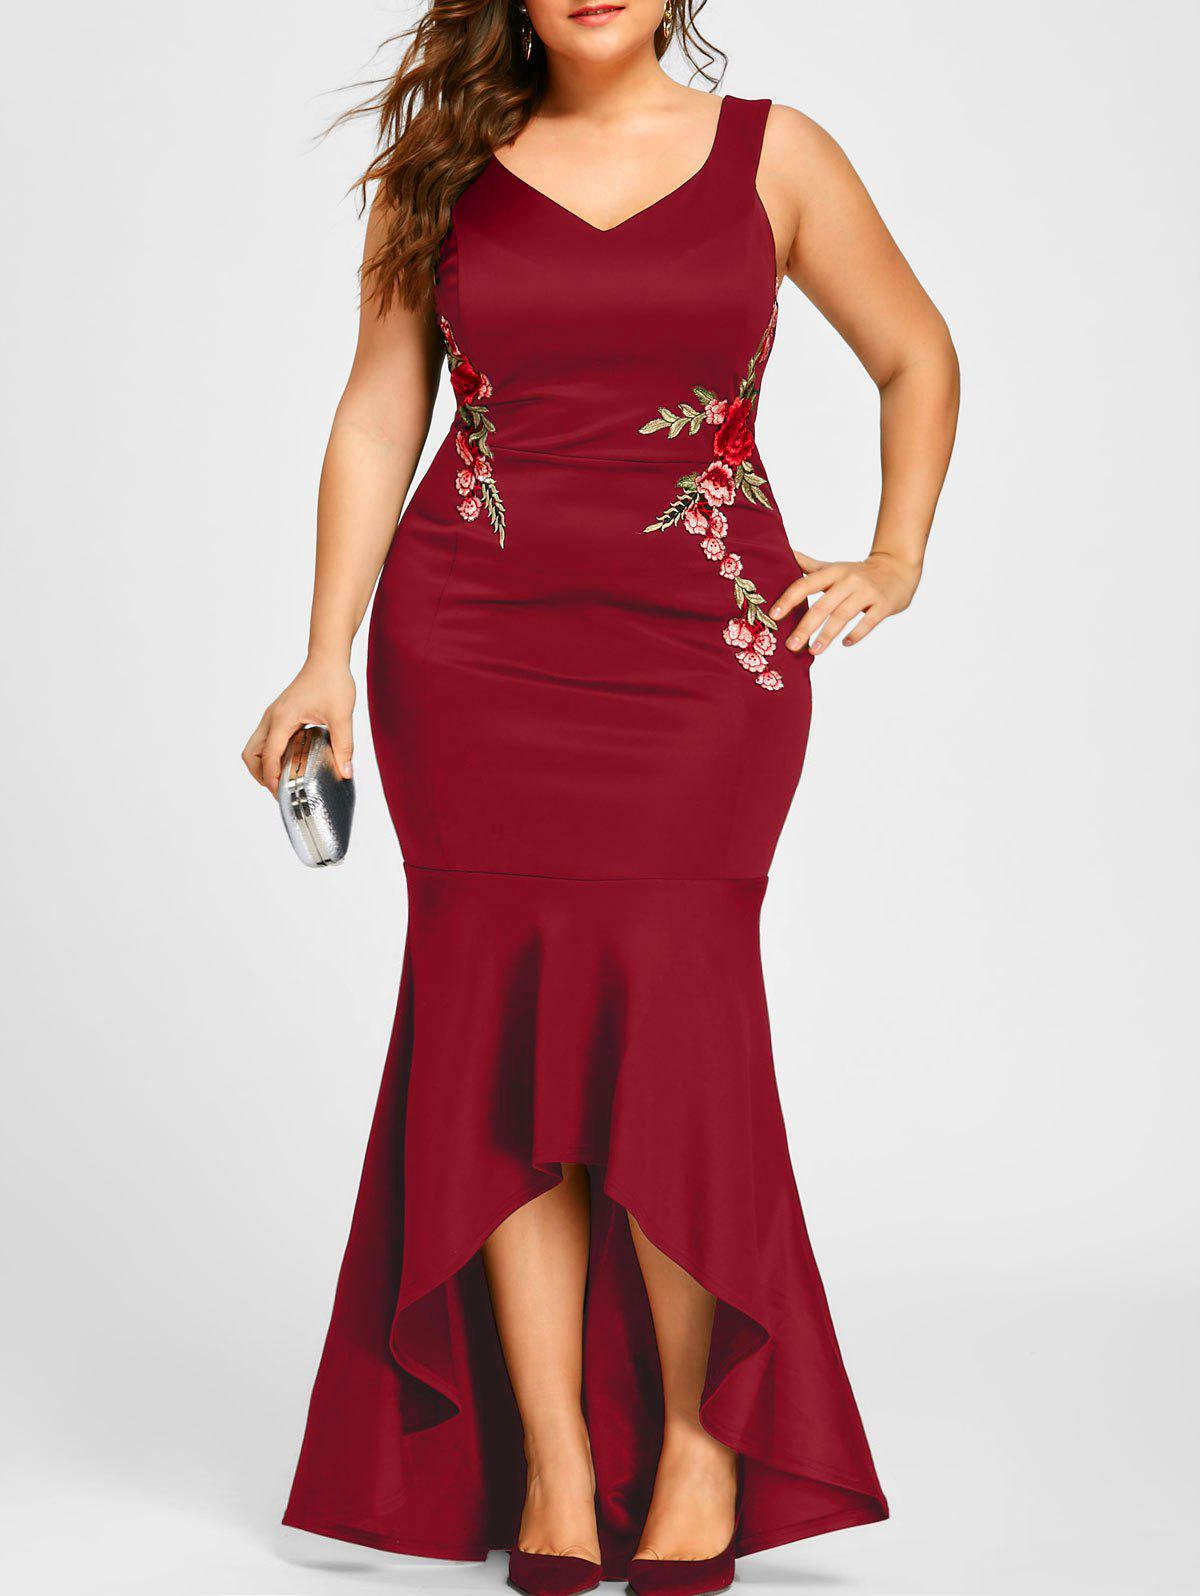 Plus Size V Neck Sleeveless Mermaid Dress 224909310